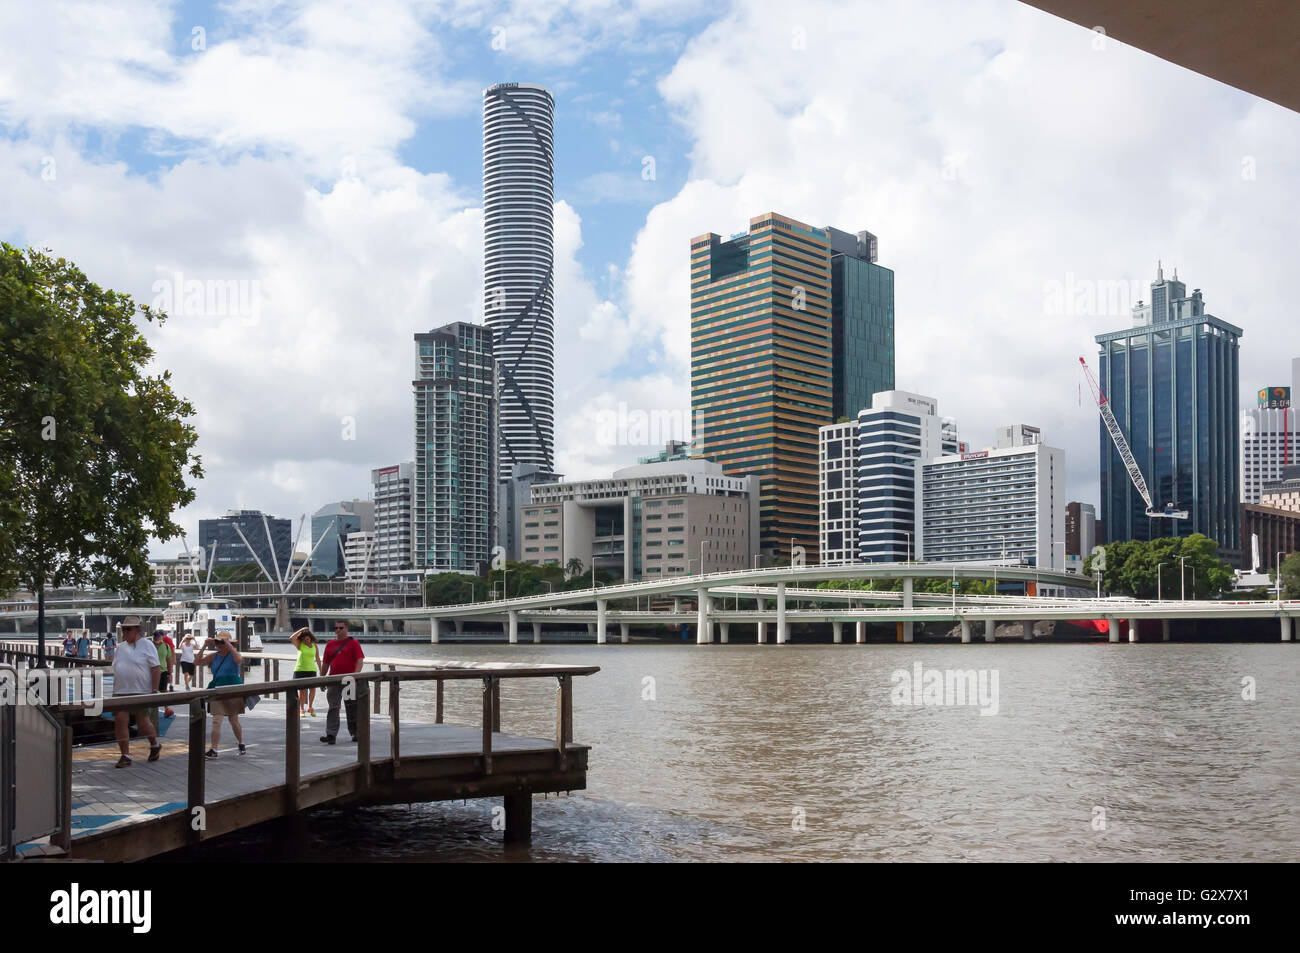 Central Business District across Brisbane River, Brisbane, Queensland, Australia - Stock Image